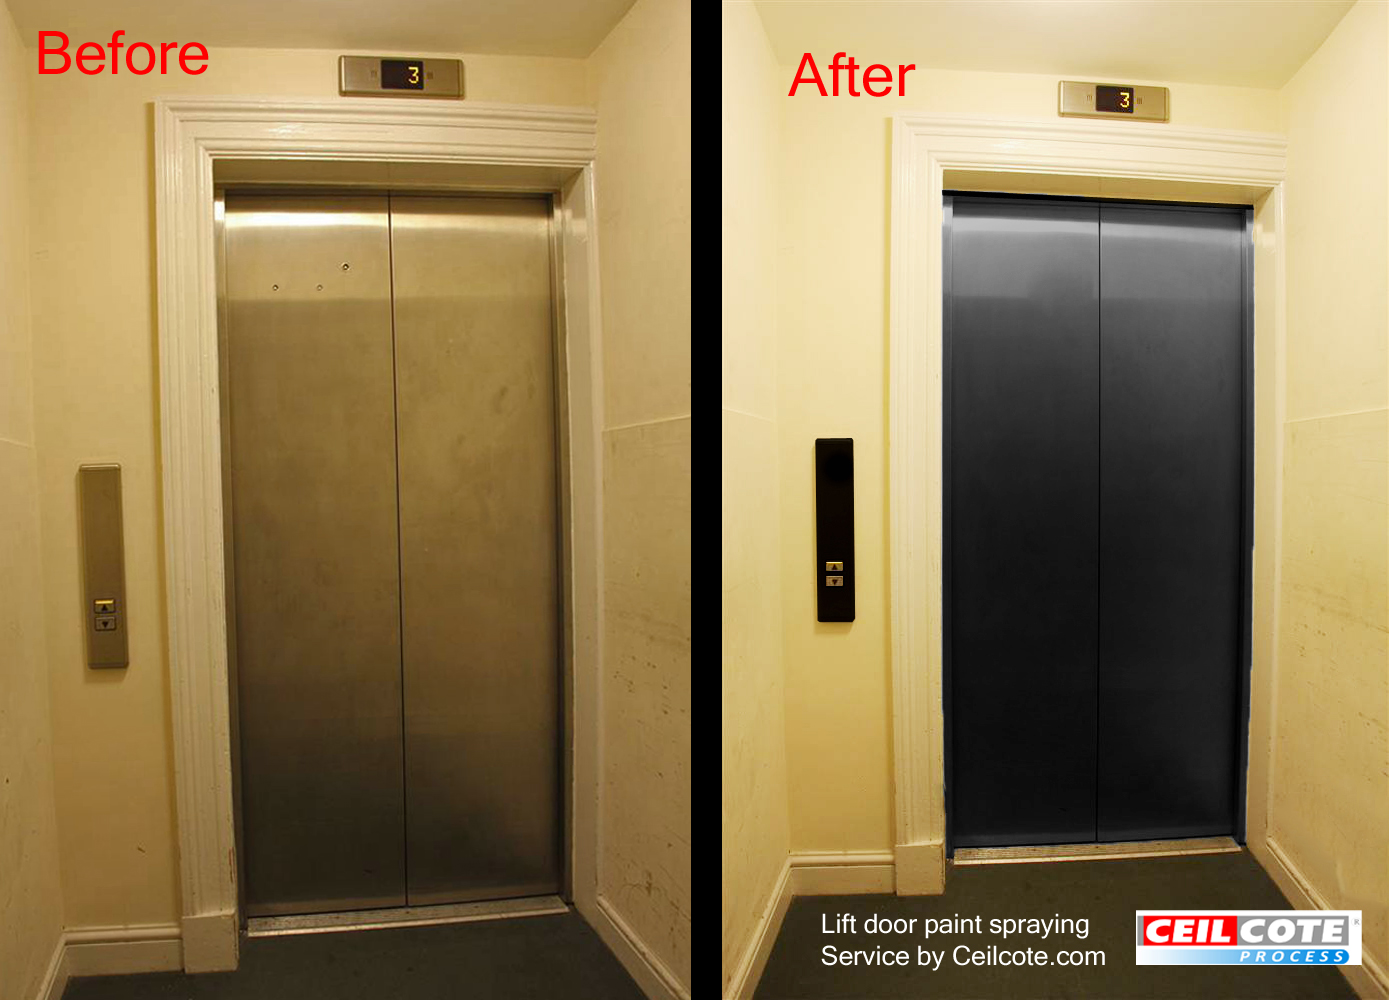 Spray painting lift door by ceilcote for How to spray paint doors